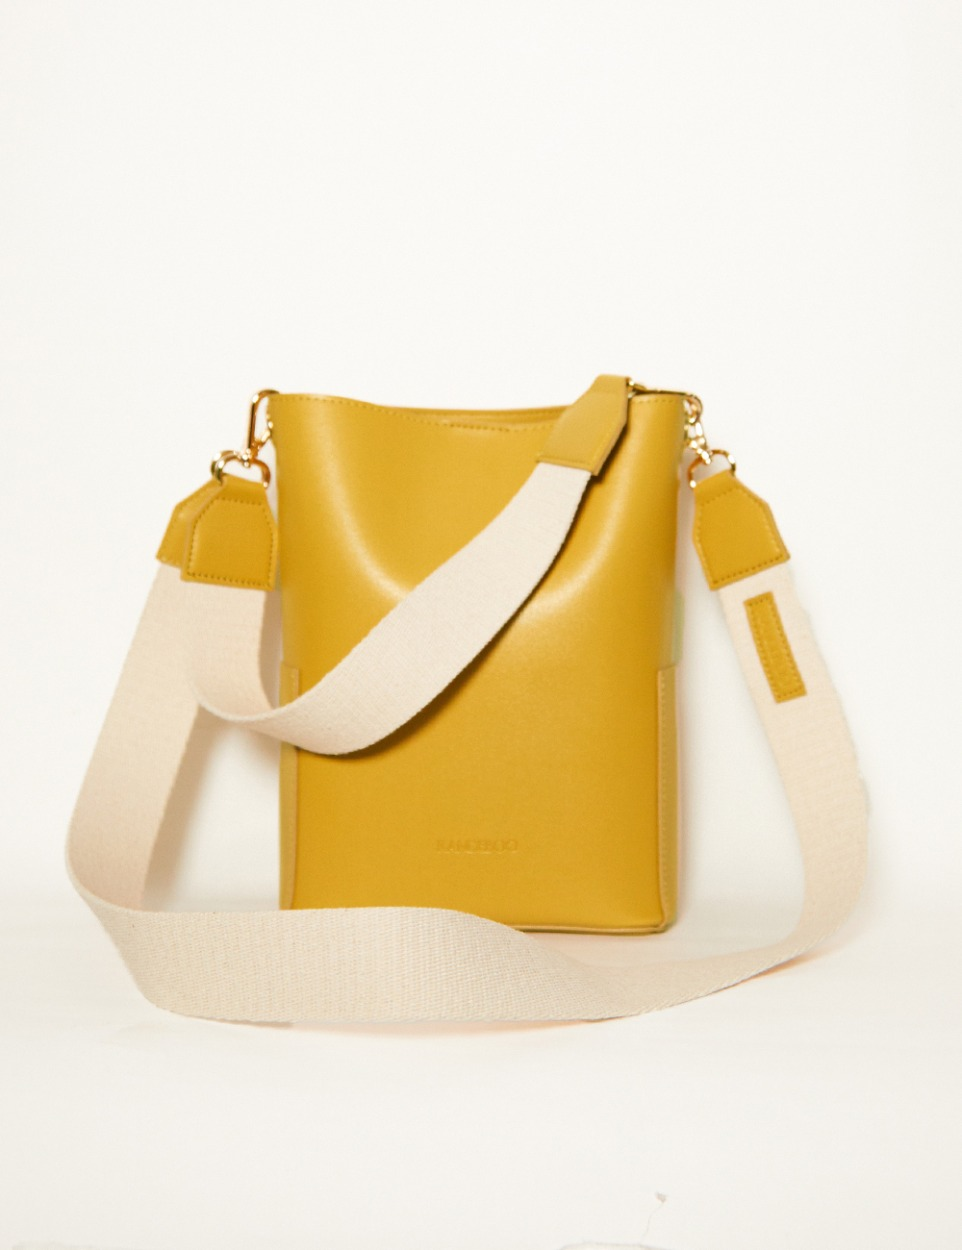 【PRE】RB petit bucket bag (yellow)